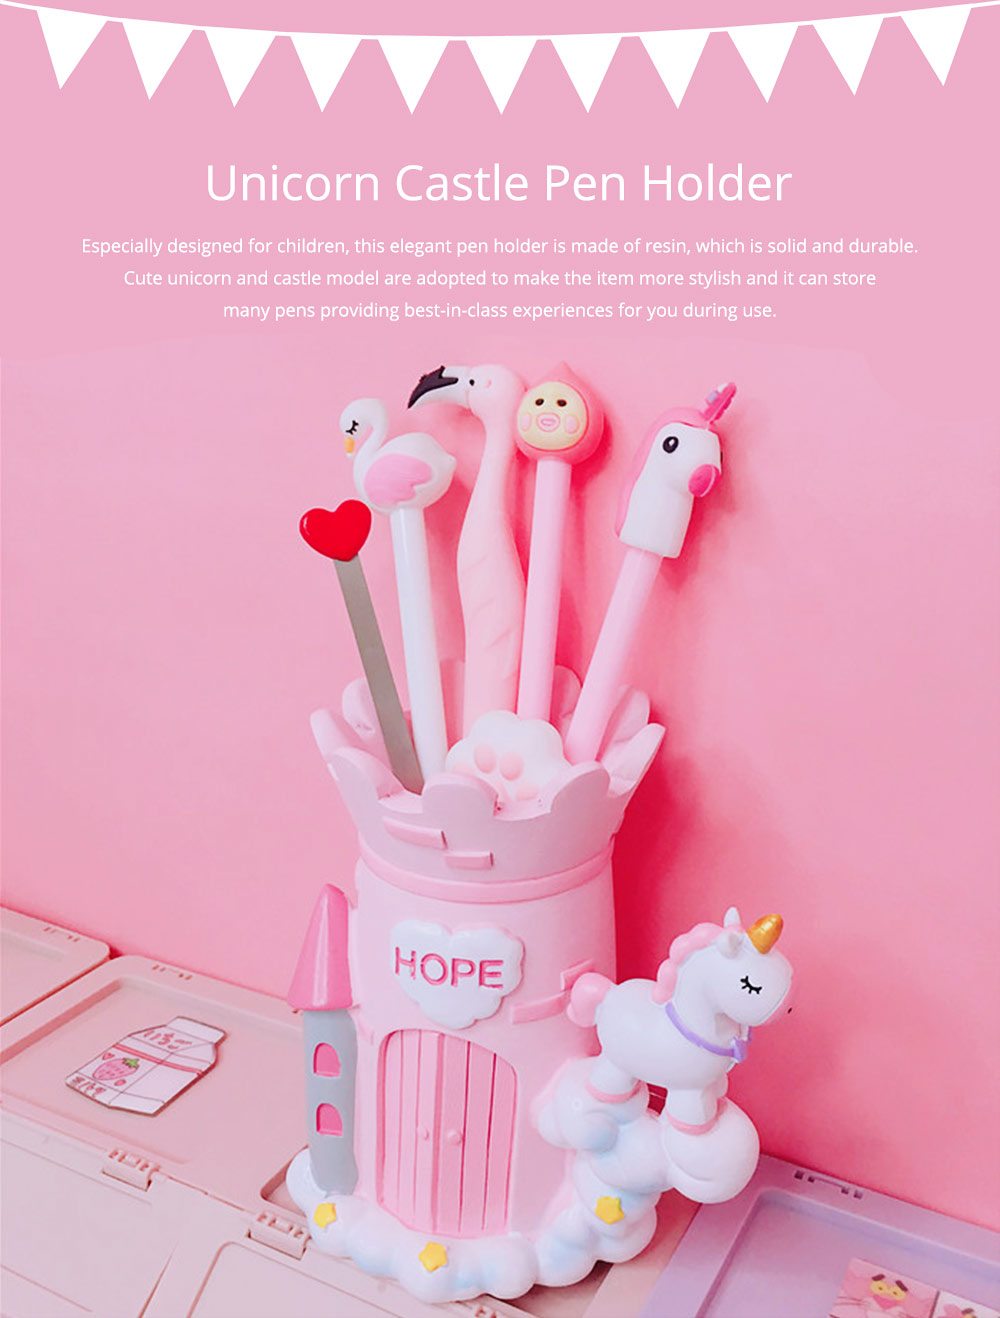 Unicorn Pen Pencil Holder, Dream Castle Pony Pen Holder Back to School Gift for Girls 0